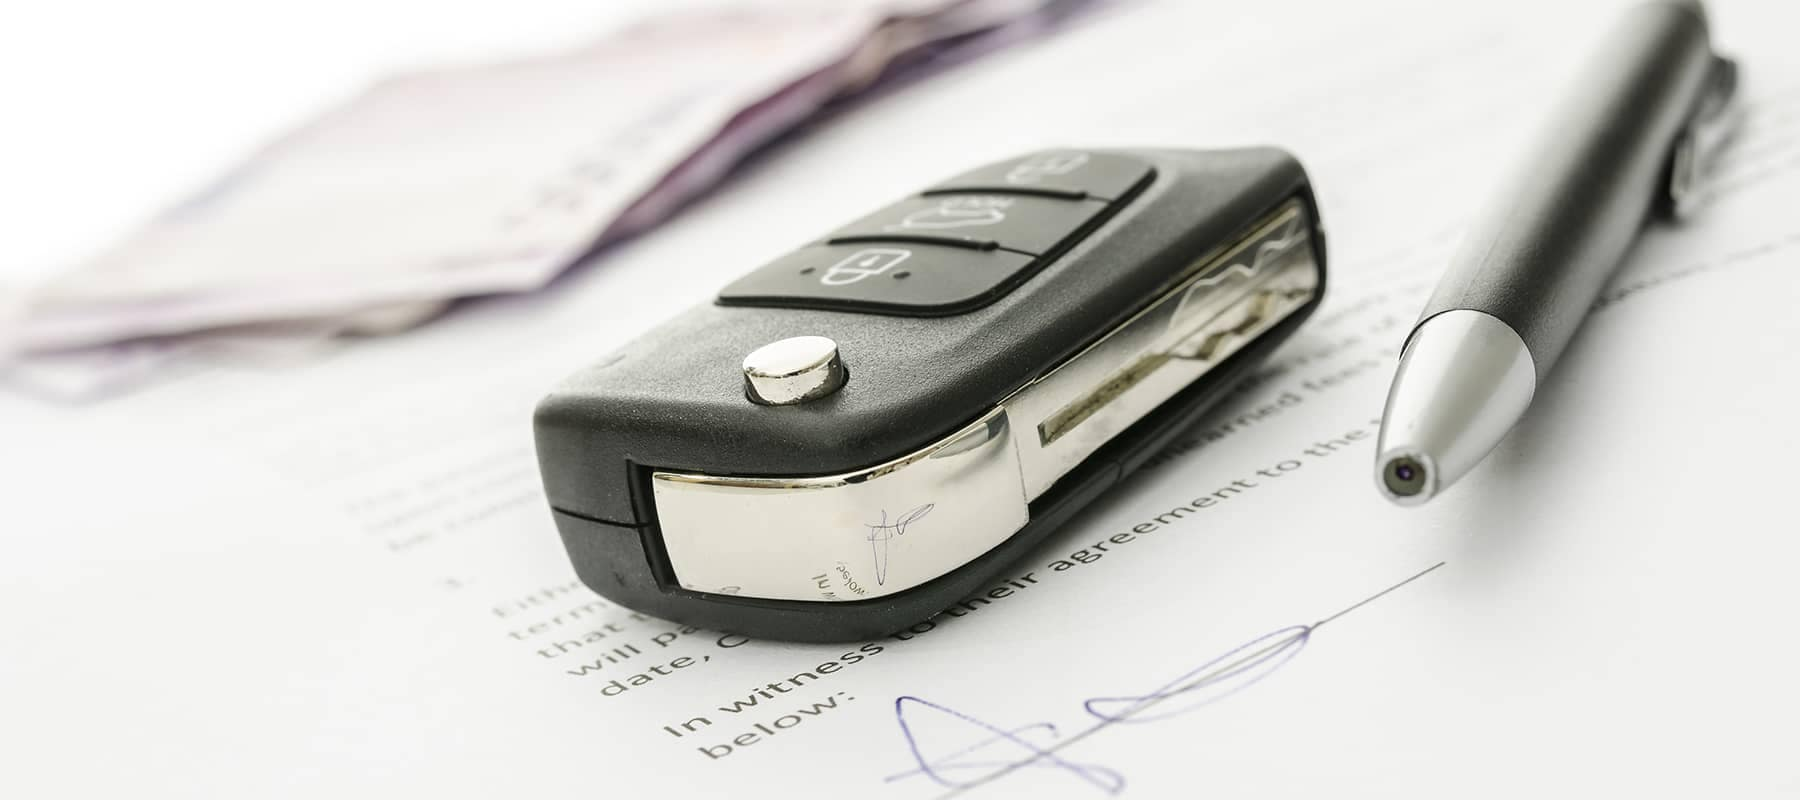 Key and Pen for Auto Documents